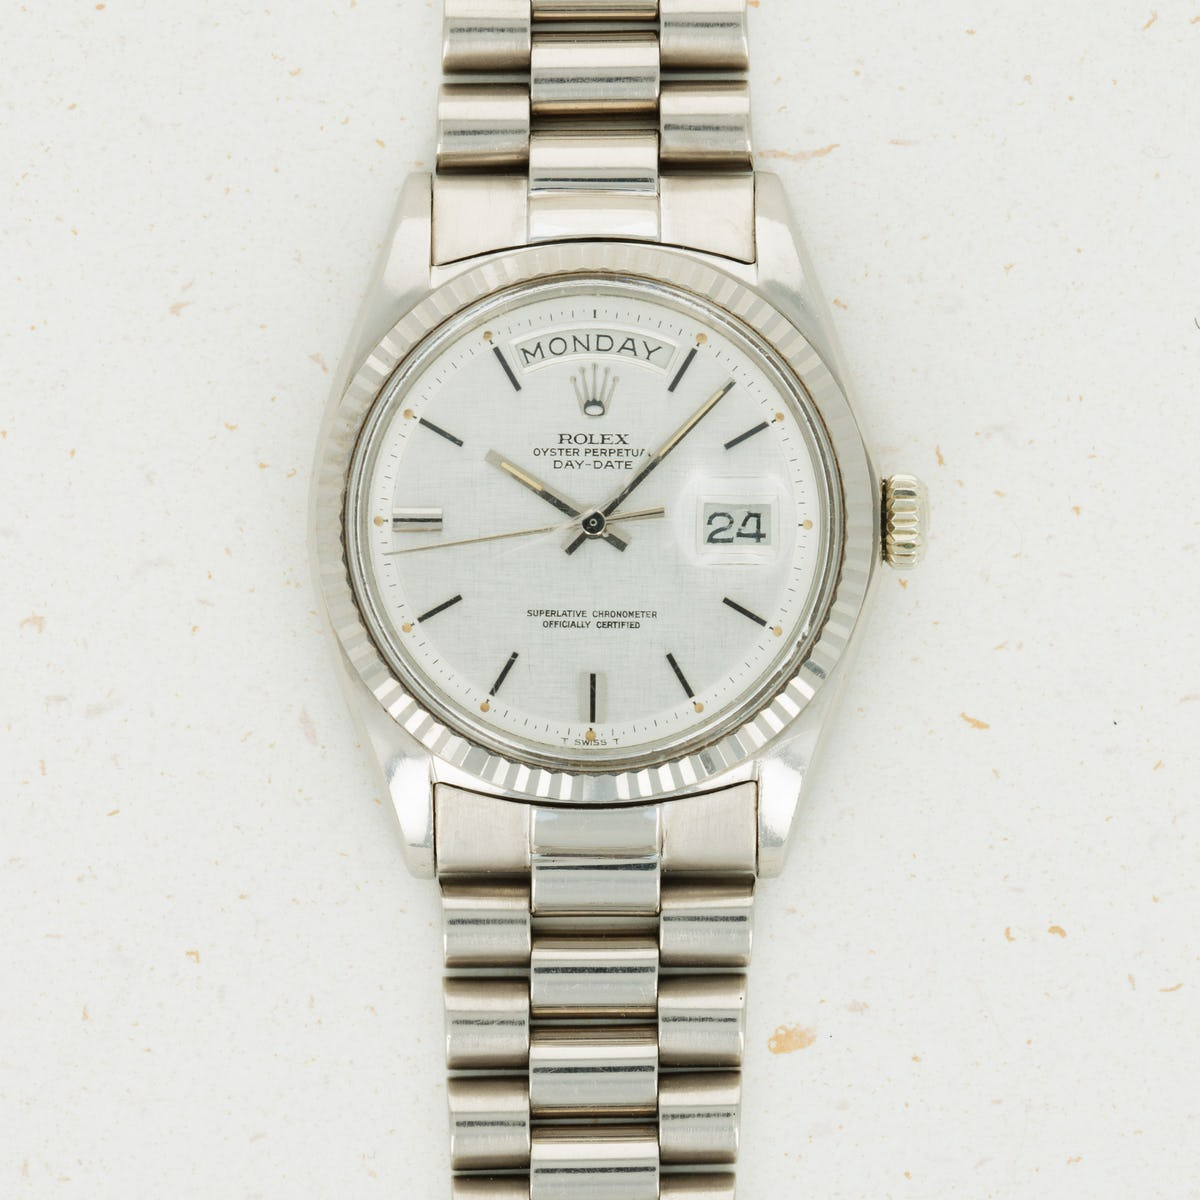 Thumbnail for Rolex 18k White Gold Day-Date 1803